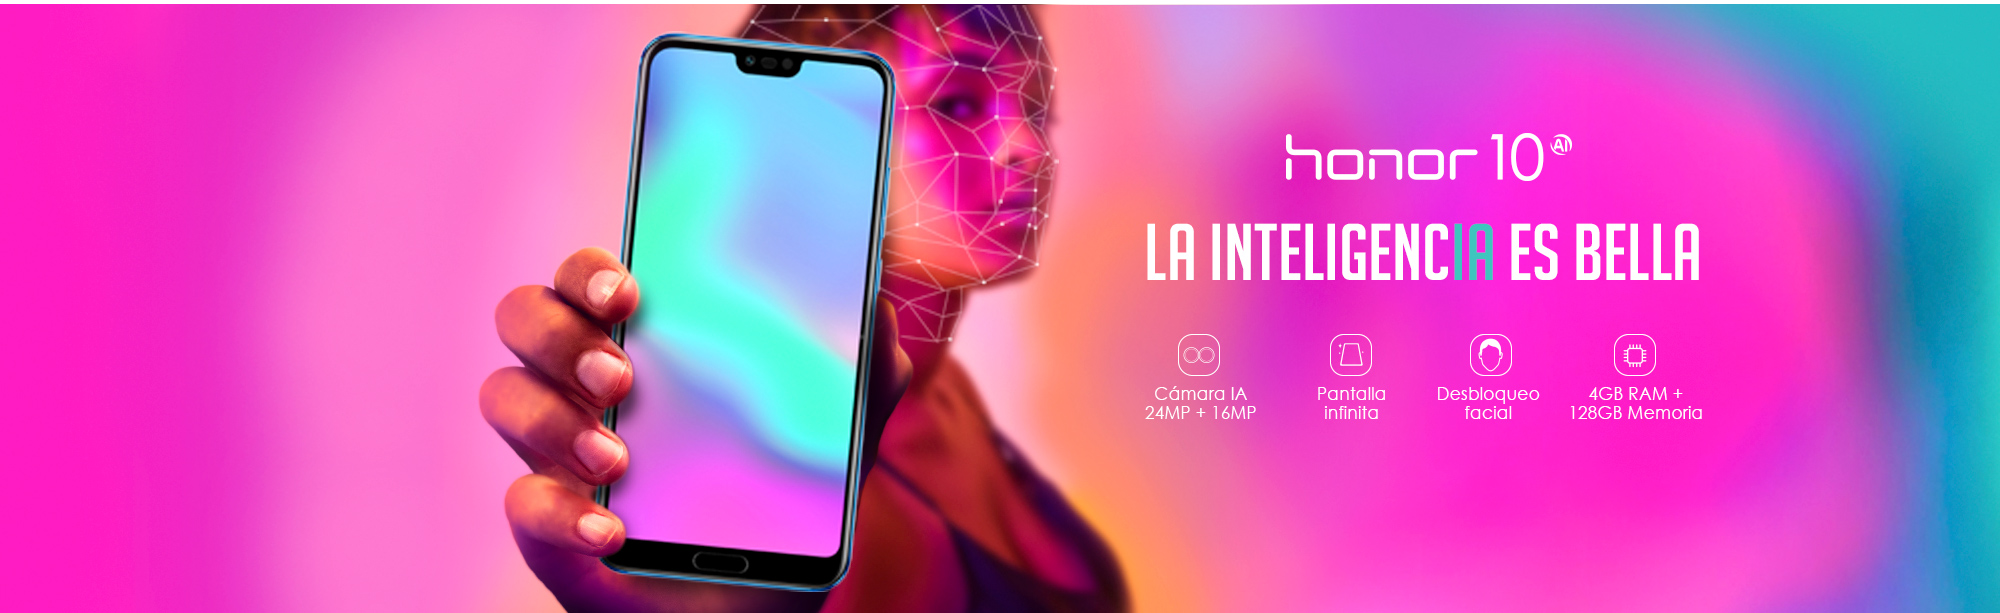 Phone House Moviles Libres Catalogo Descubre Las Ofertas Y Los Productos De Honor En Phone House